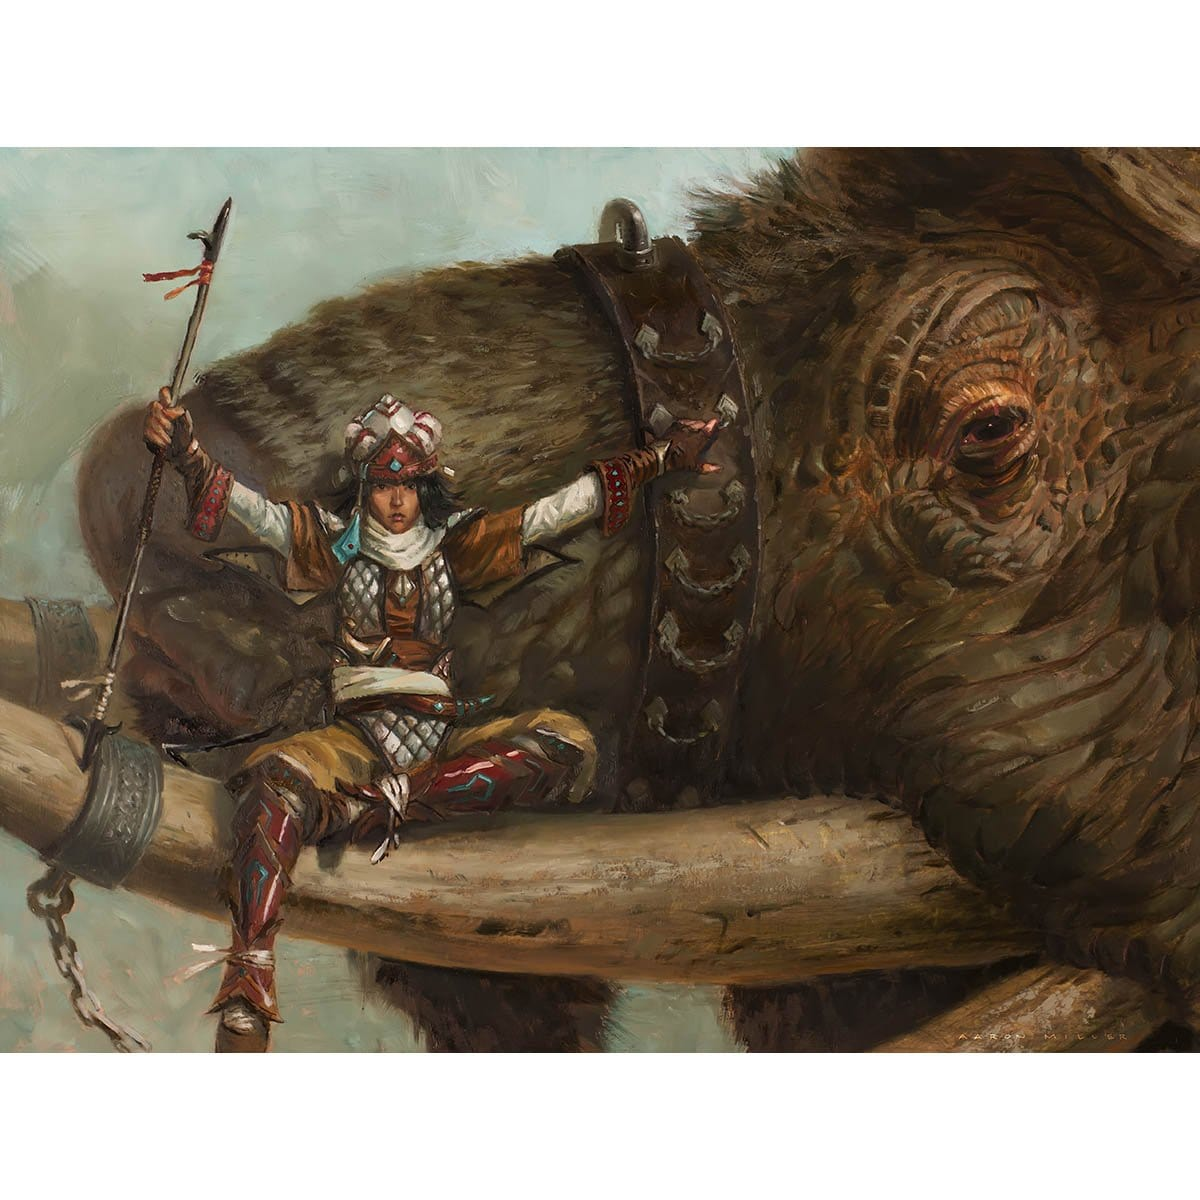 Tuskguard Captain Print - Print - Original Magic Art - Accessories for Magic the Gathering and other card games